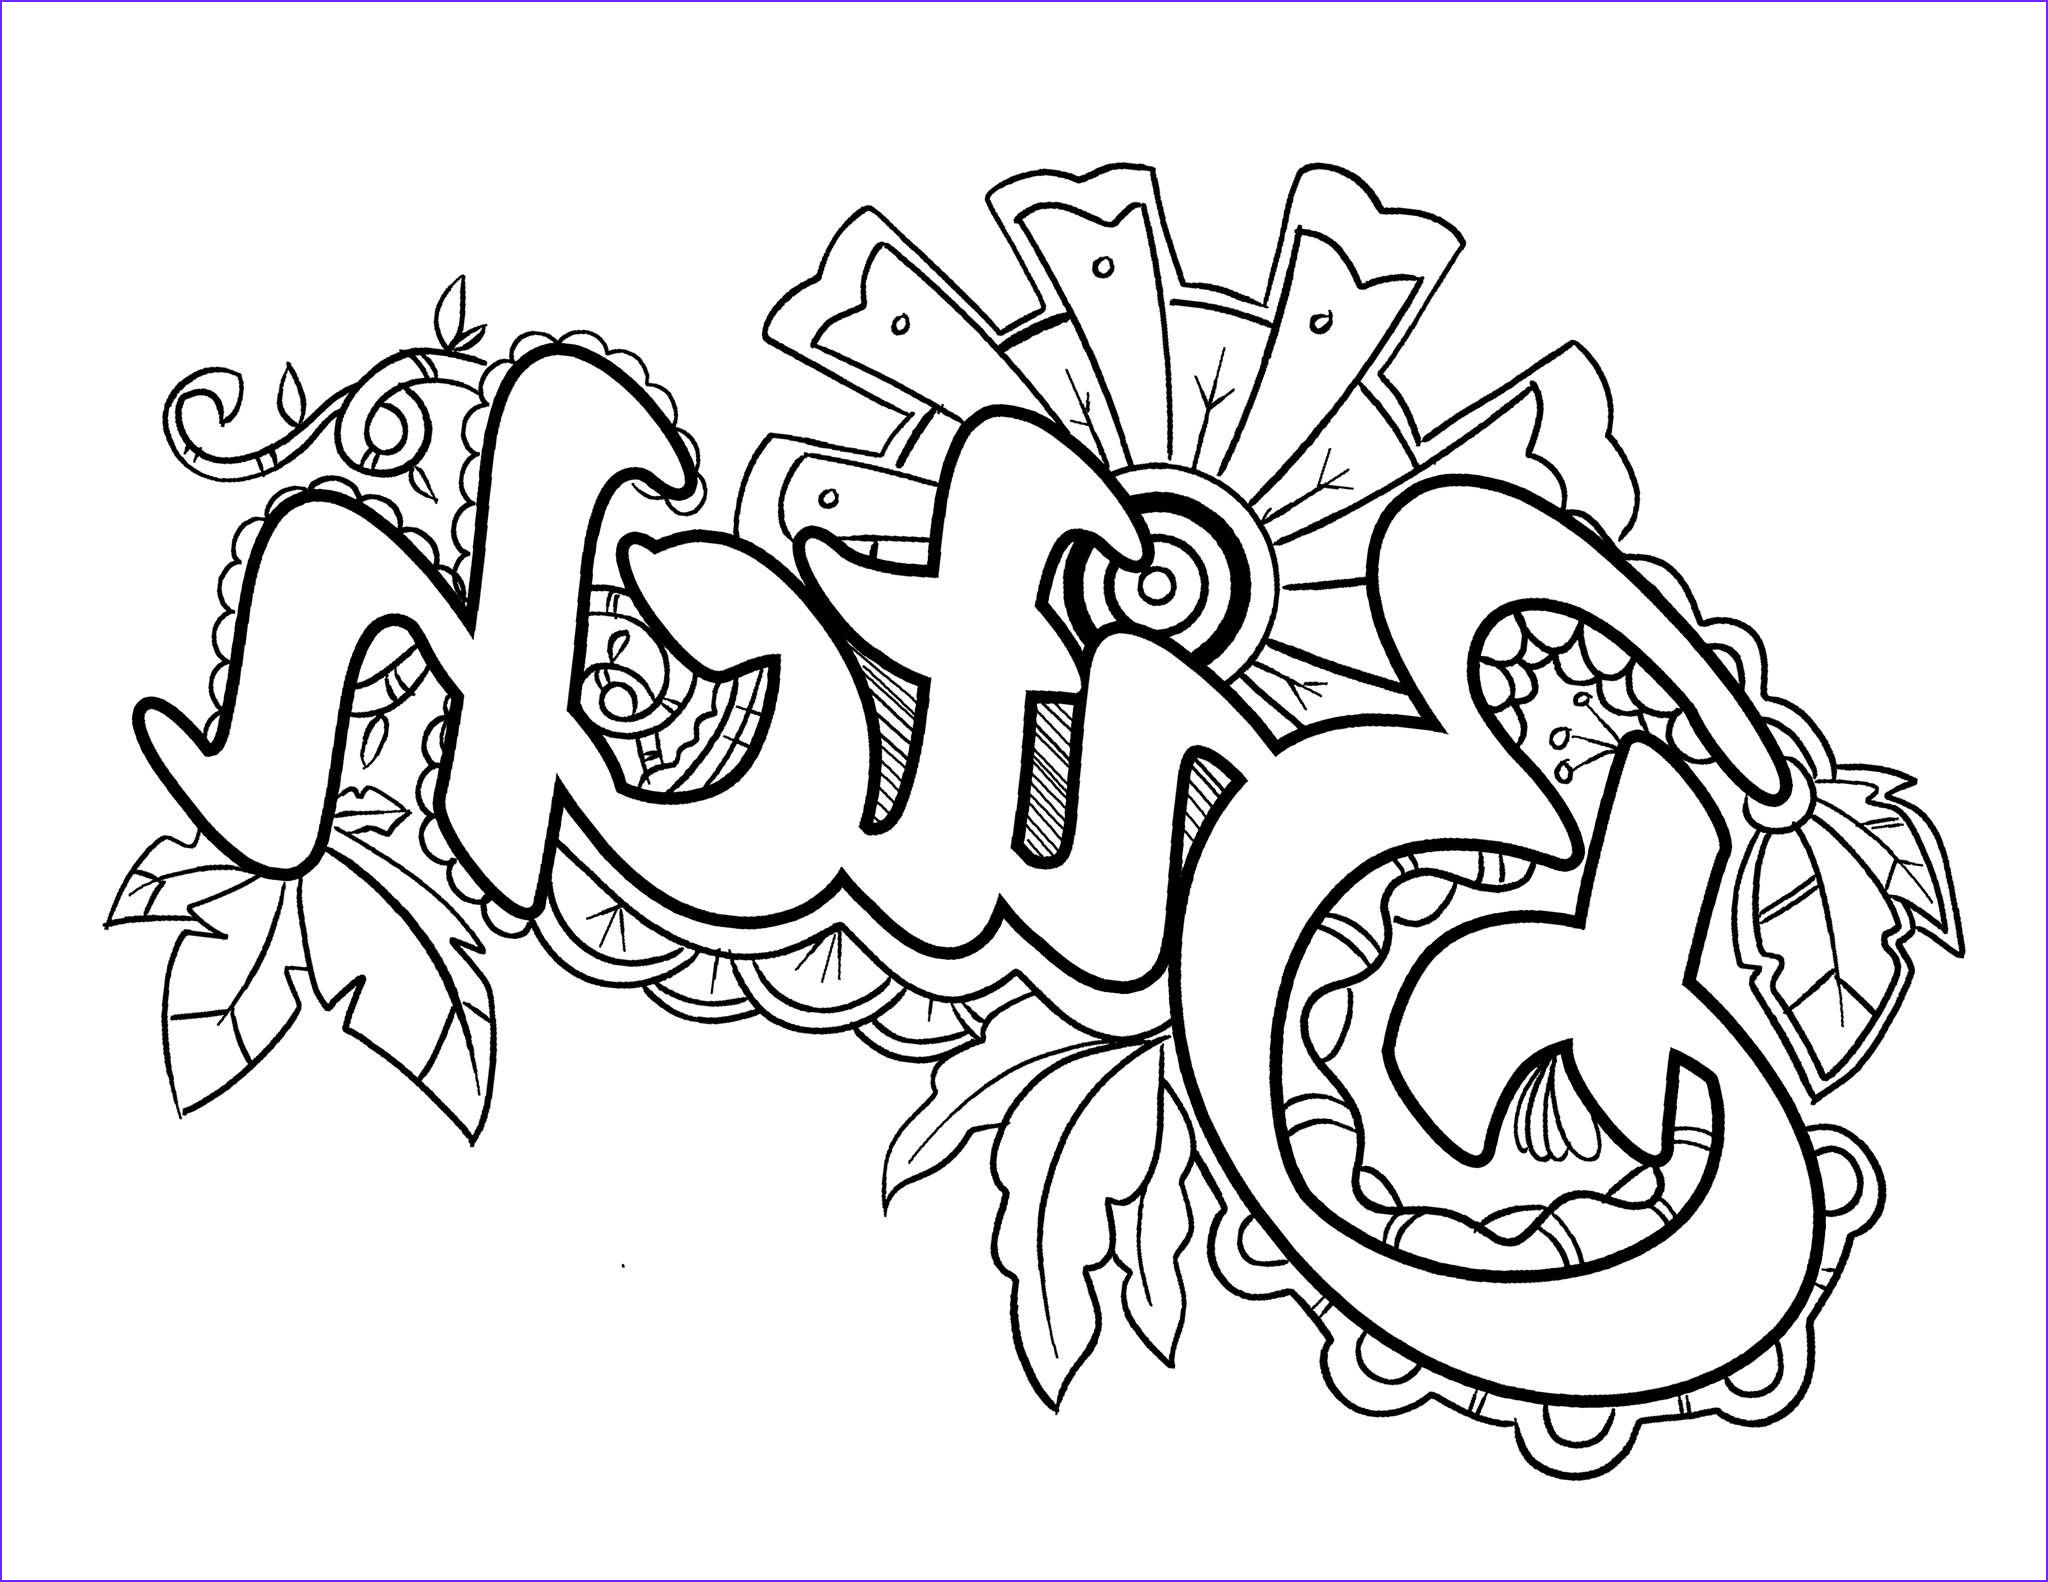 Cursing Adult Coloring Book Elegant Image Pin by Tami Jacobs On Coloring Hippie